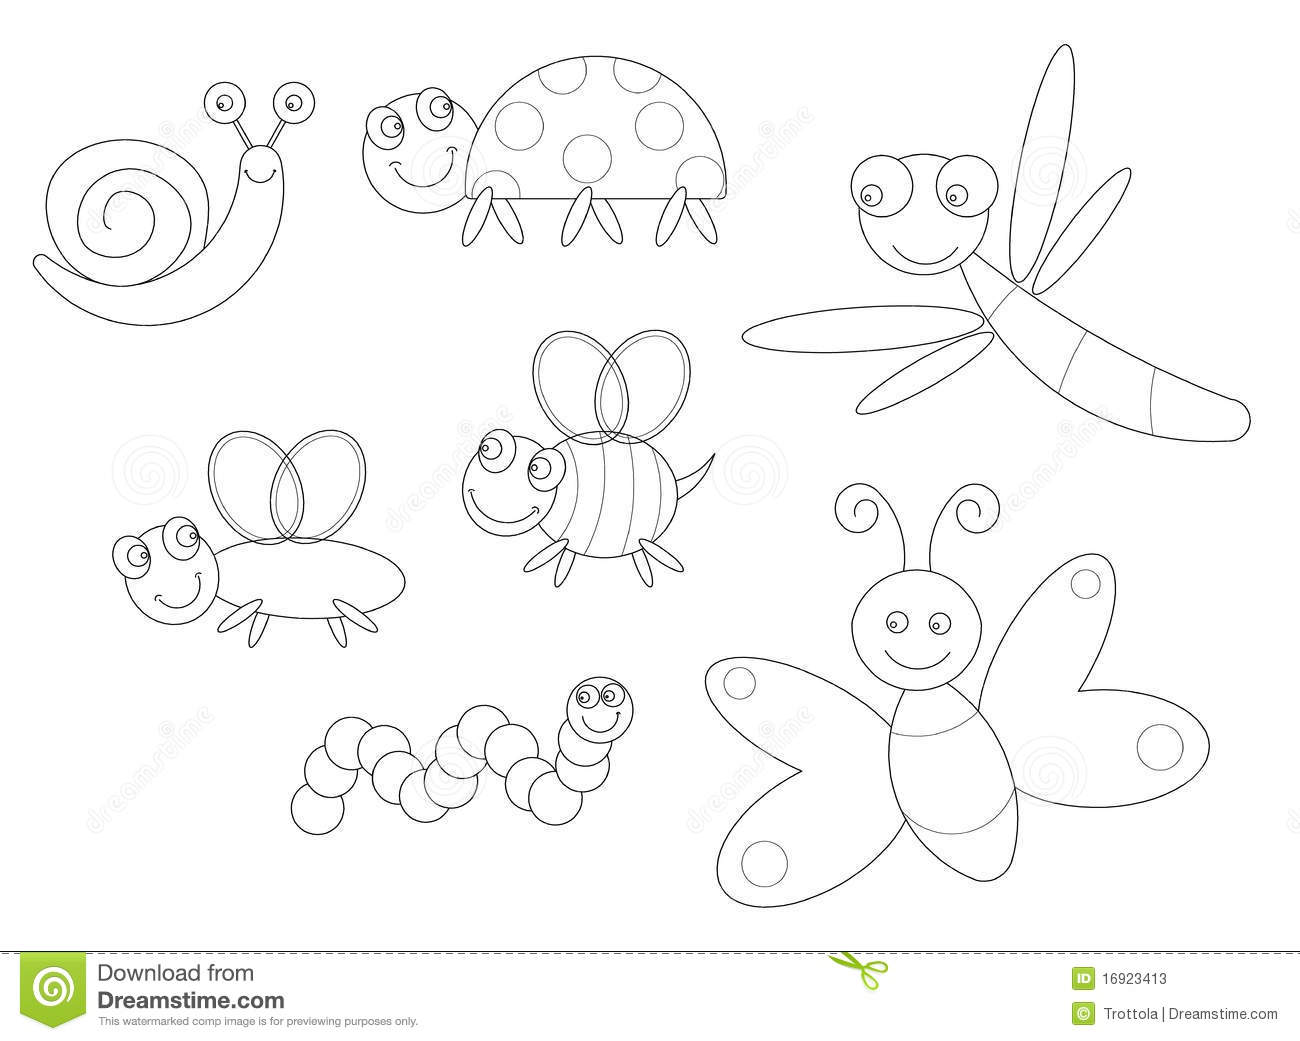 Insect coloring #3, Download drawings